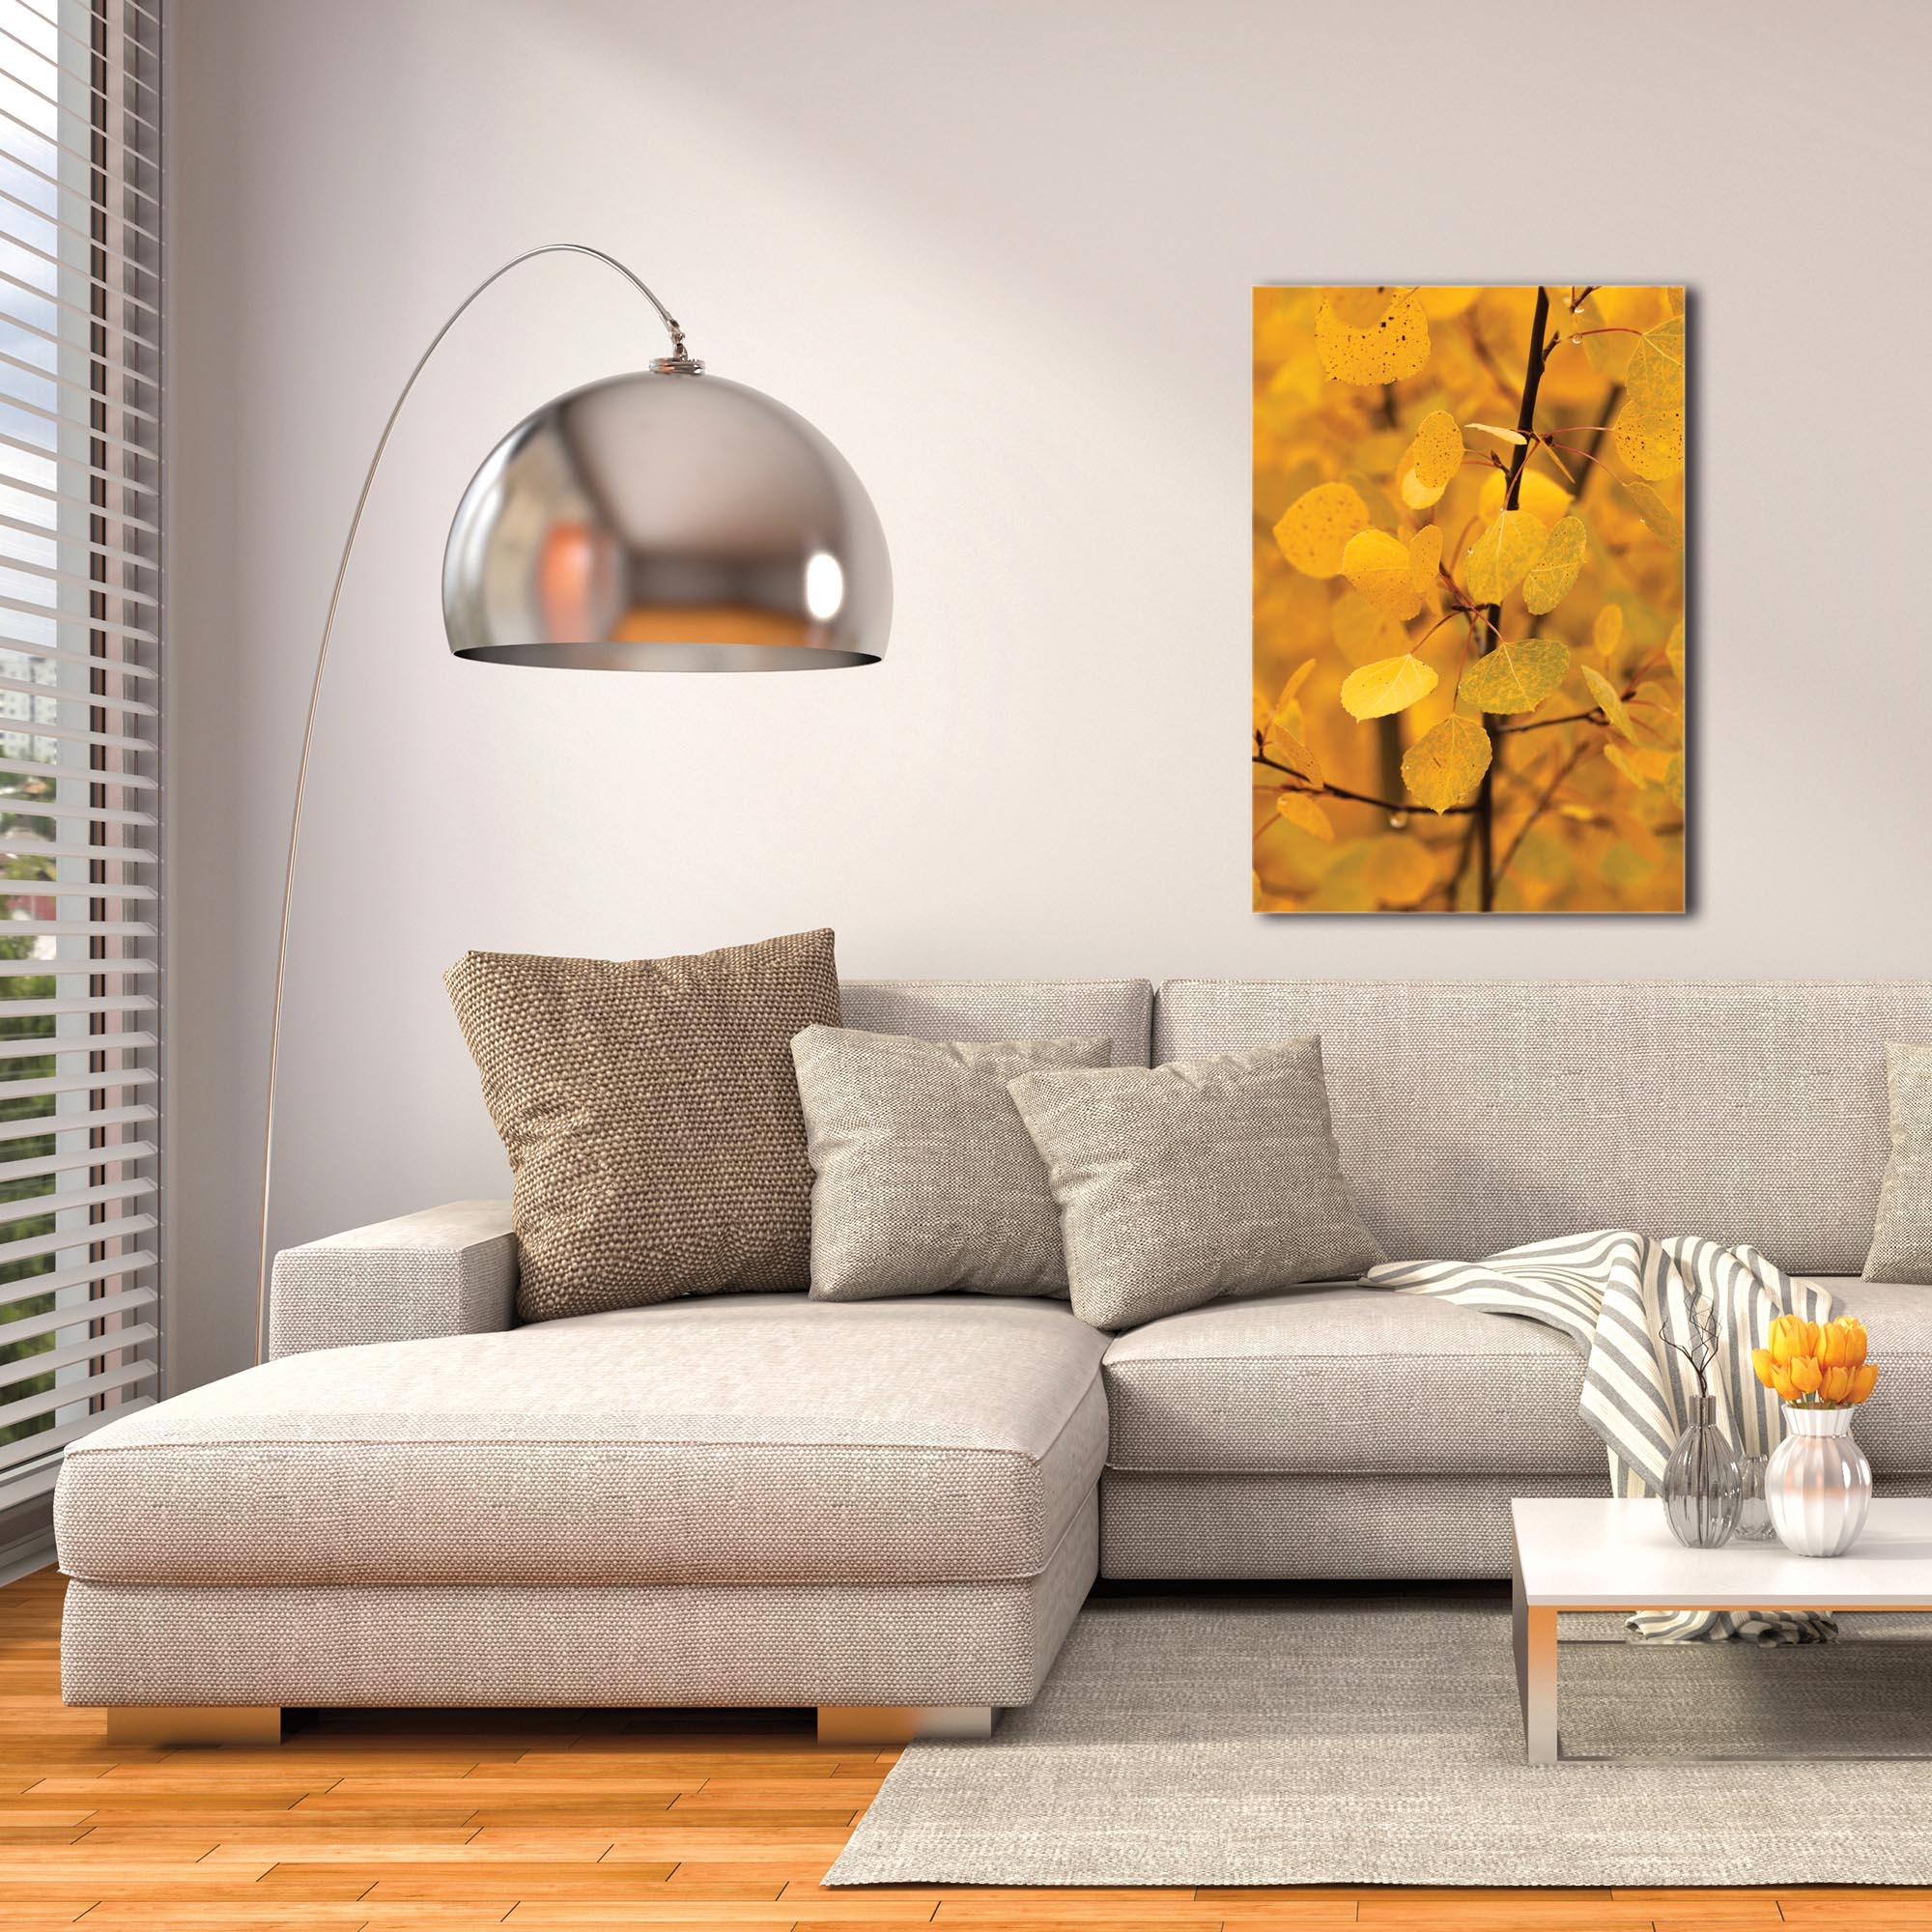 Nature Photography 'Turn to Gold' - Autumn Leaves Art on Metal or Plexiglass - Image 3